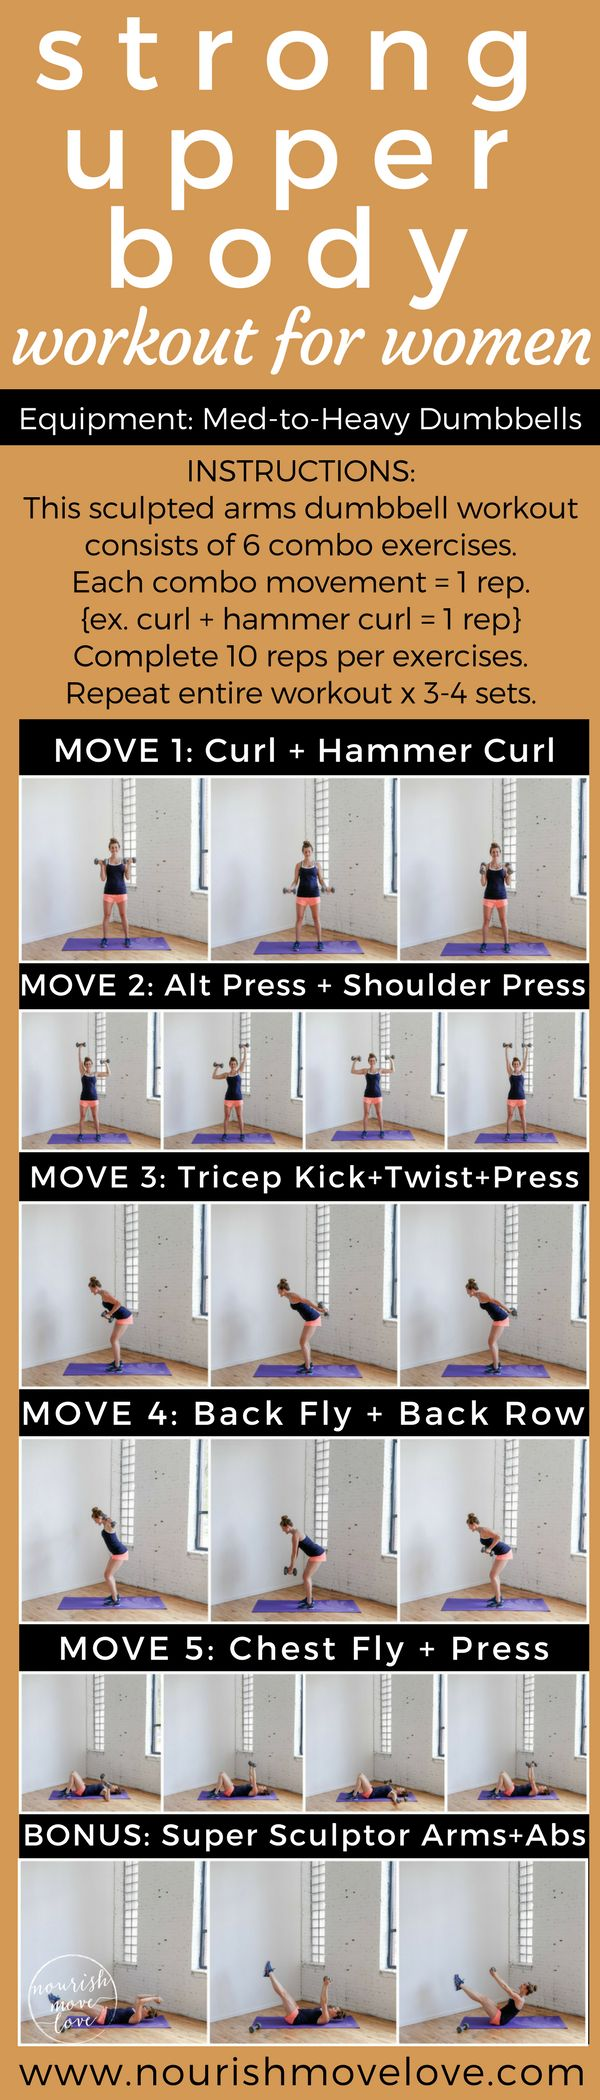 Sculpted arms dumbbell workout - 20 minute, six exercises to build lean muscle and upper body strength. STRICTLY STRENGTH upper body workout. Biceps, triceps, shoulders, back, chest, BONUS core / ab workout.  | Posted By: CustomWeightLossProgram.com